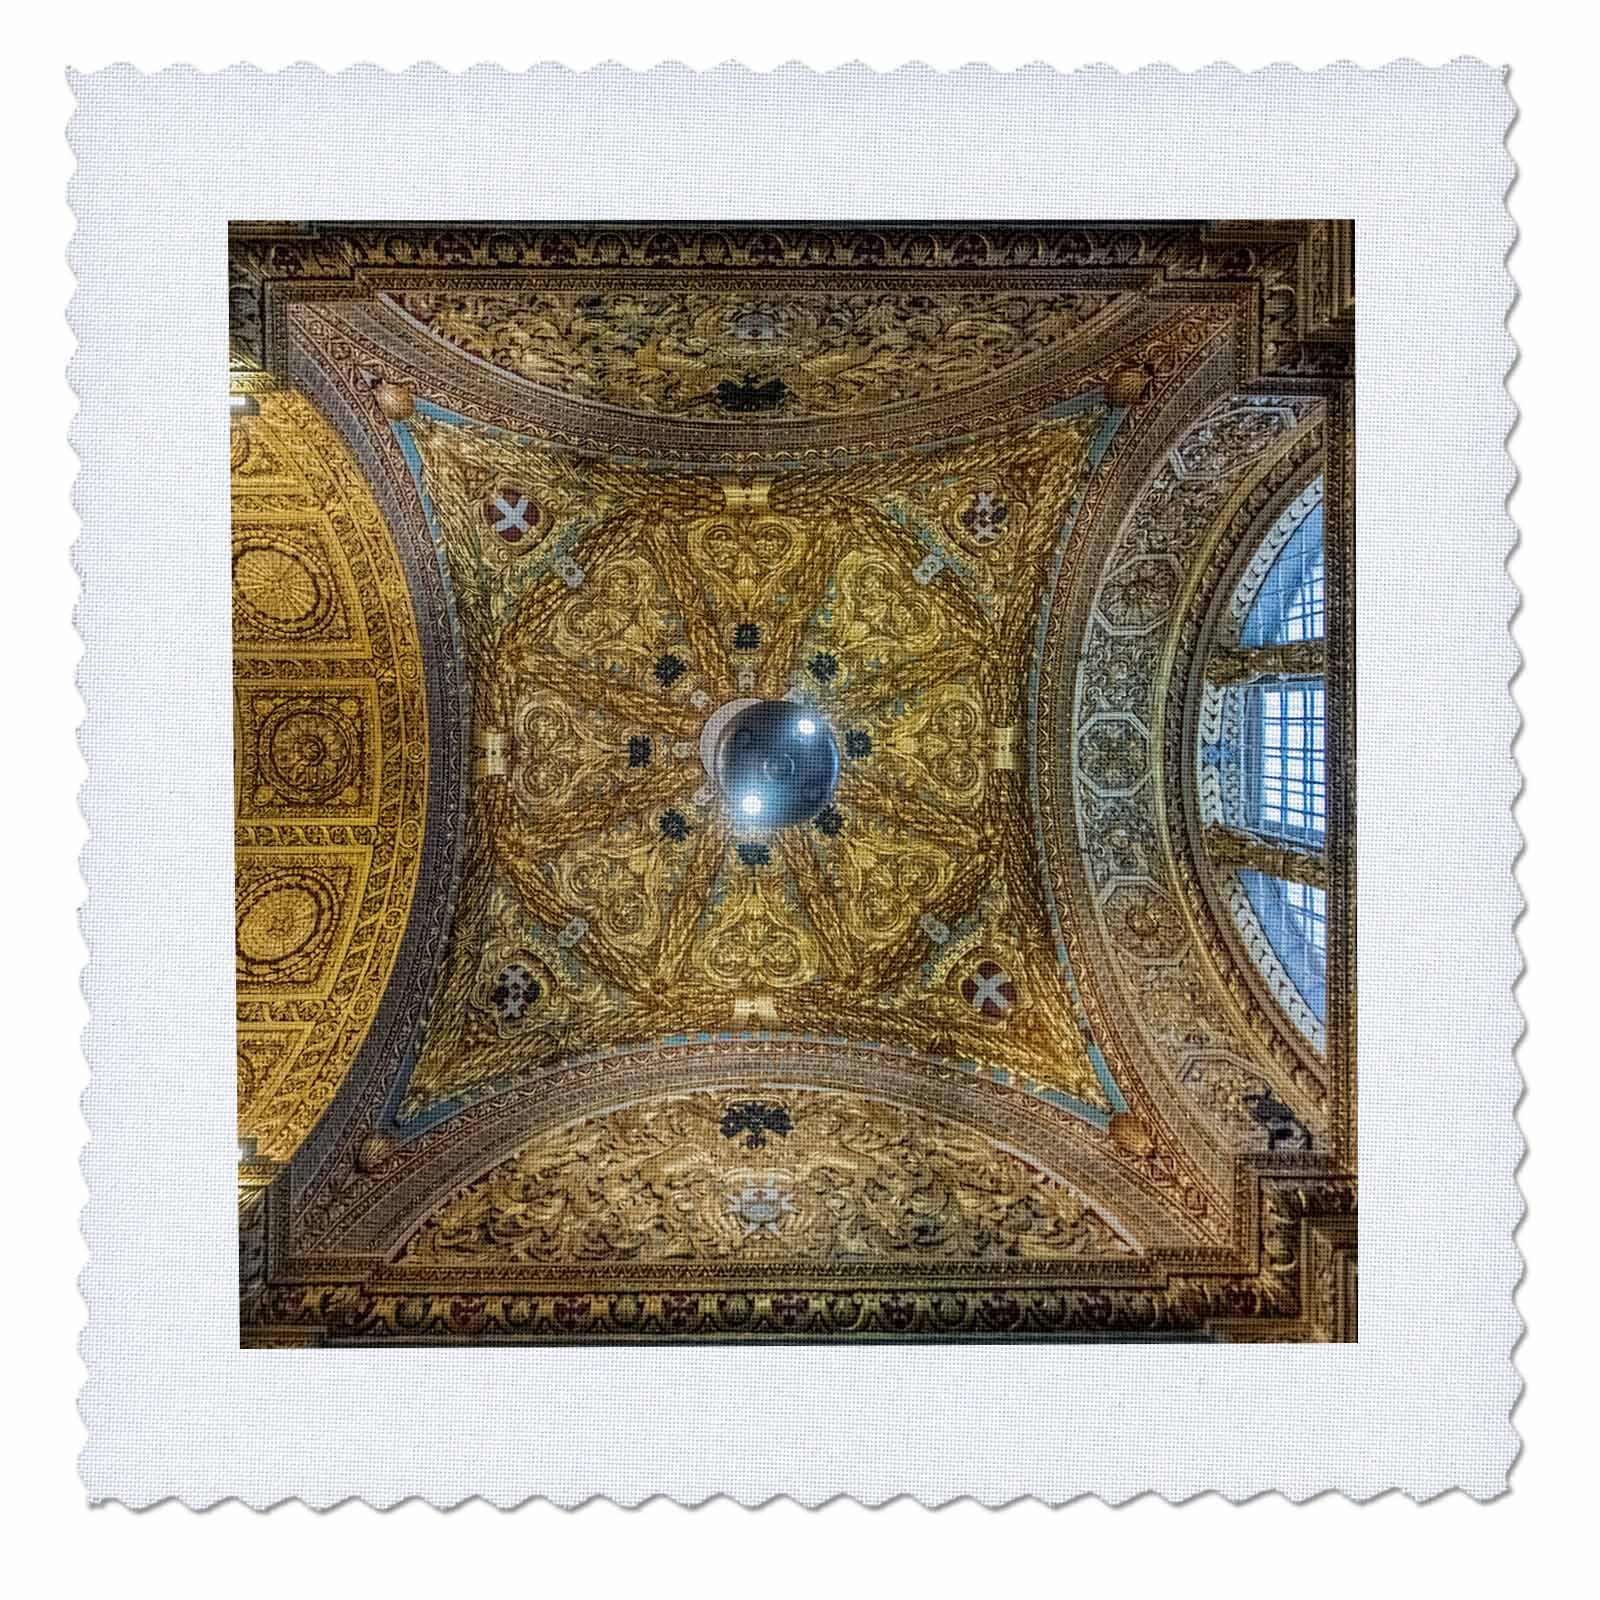 3dRose Danita Delimont - Churches - Malta, Valletta, St. Johns Co Cathedral Ceiling - 16x16 inch quilt square (qs_277699_6)